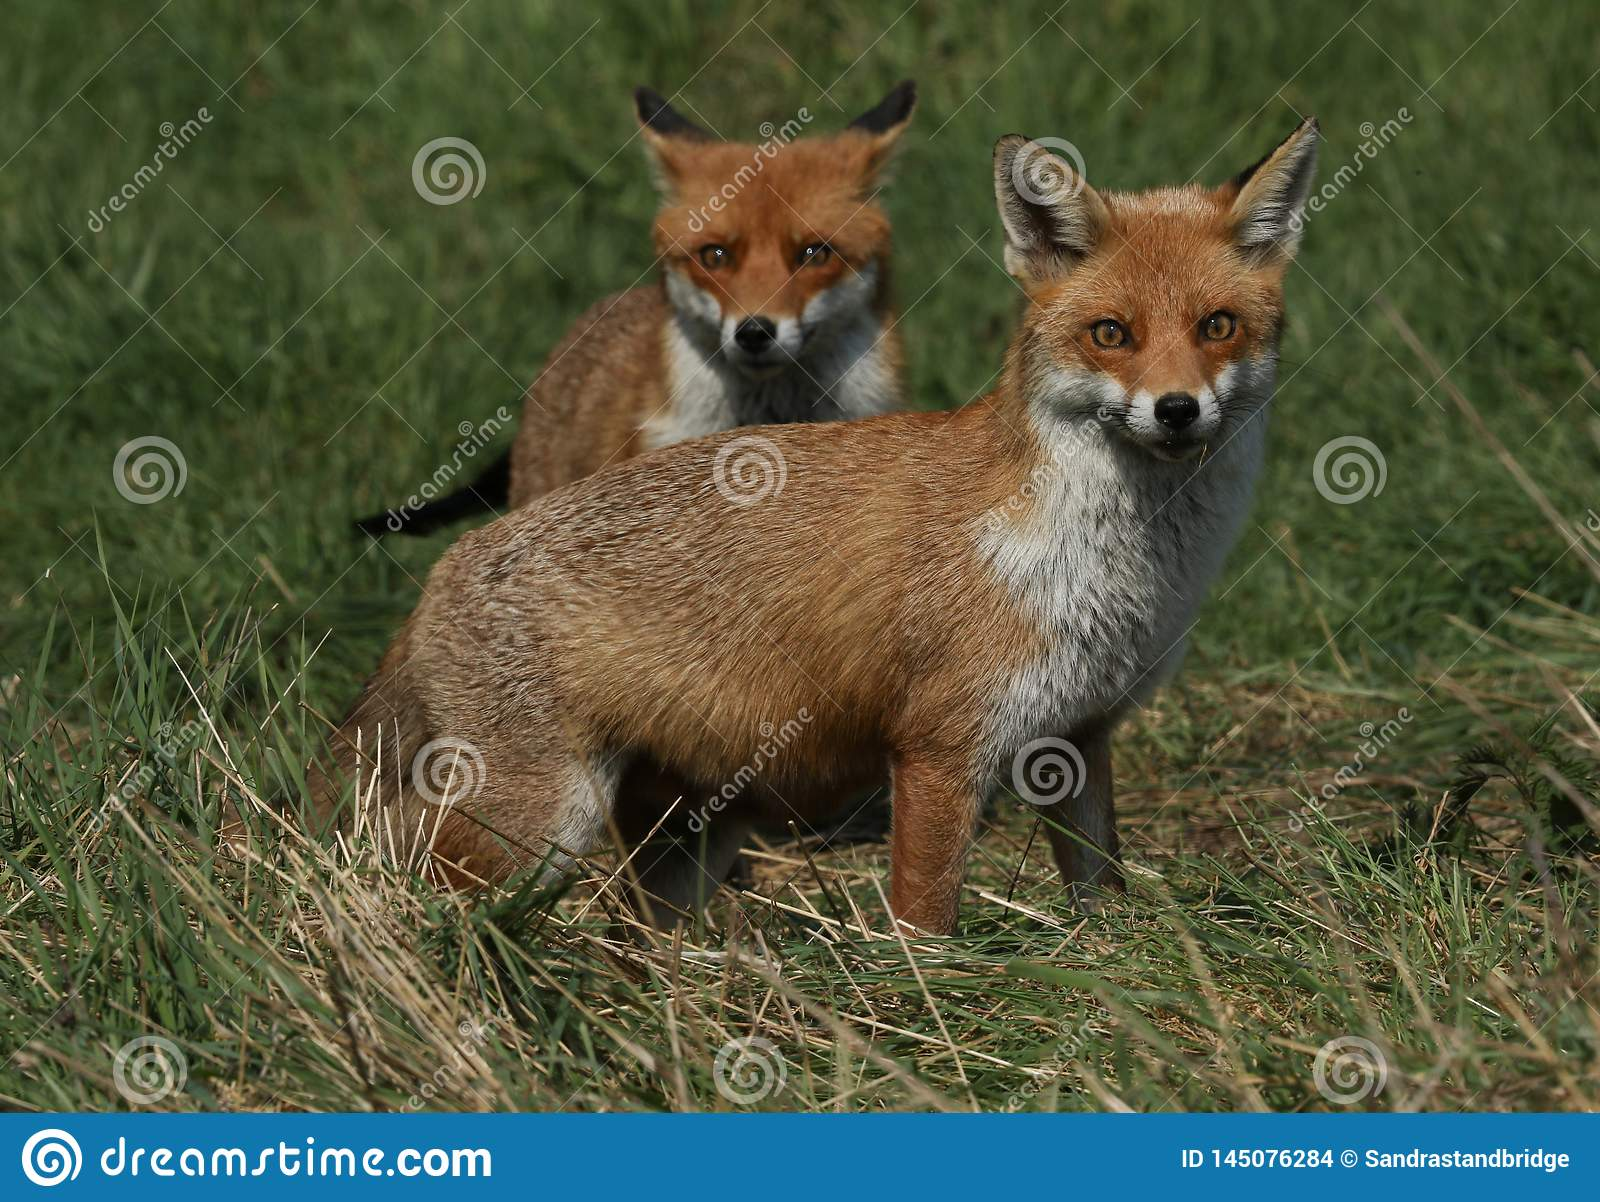 Two magnificent wild Red Fox Vulpes vulpes hunting for food to eat in the long grass.